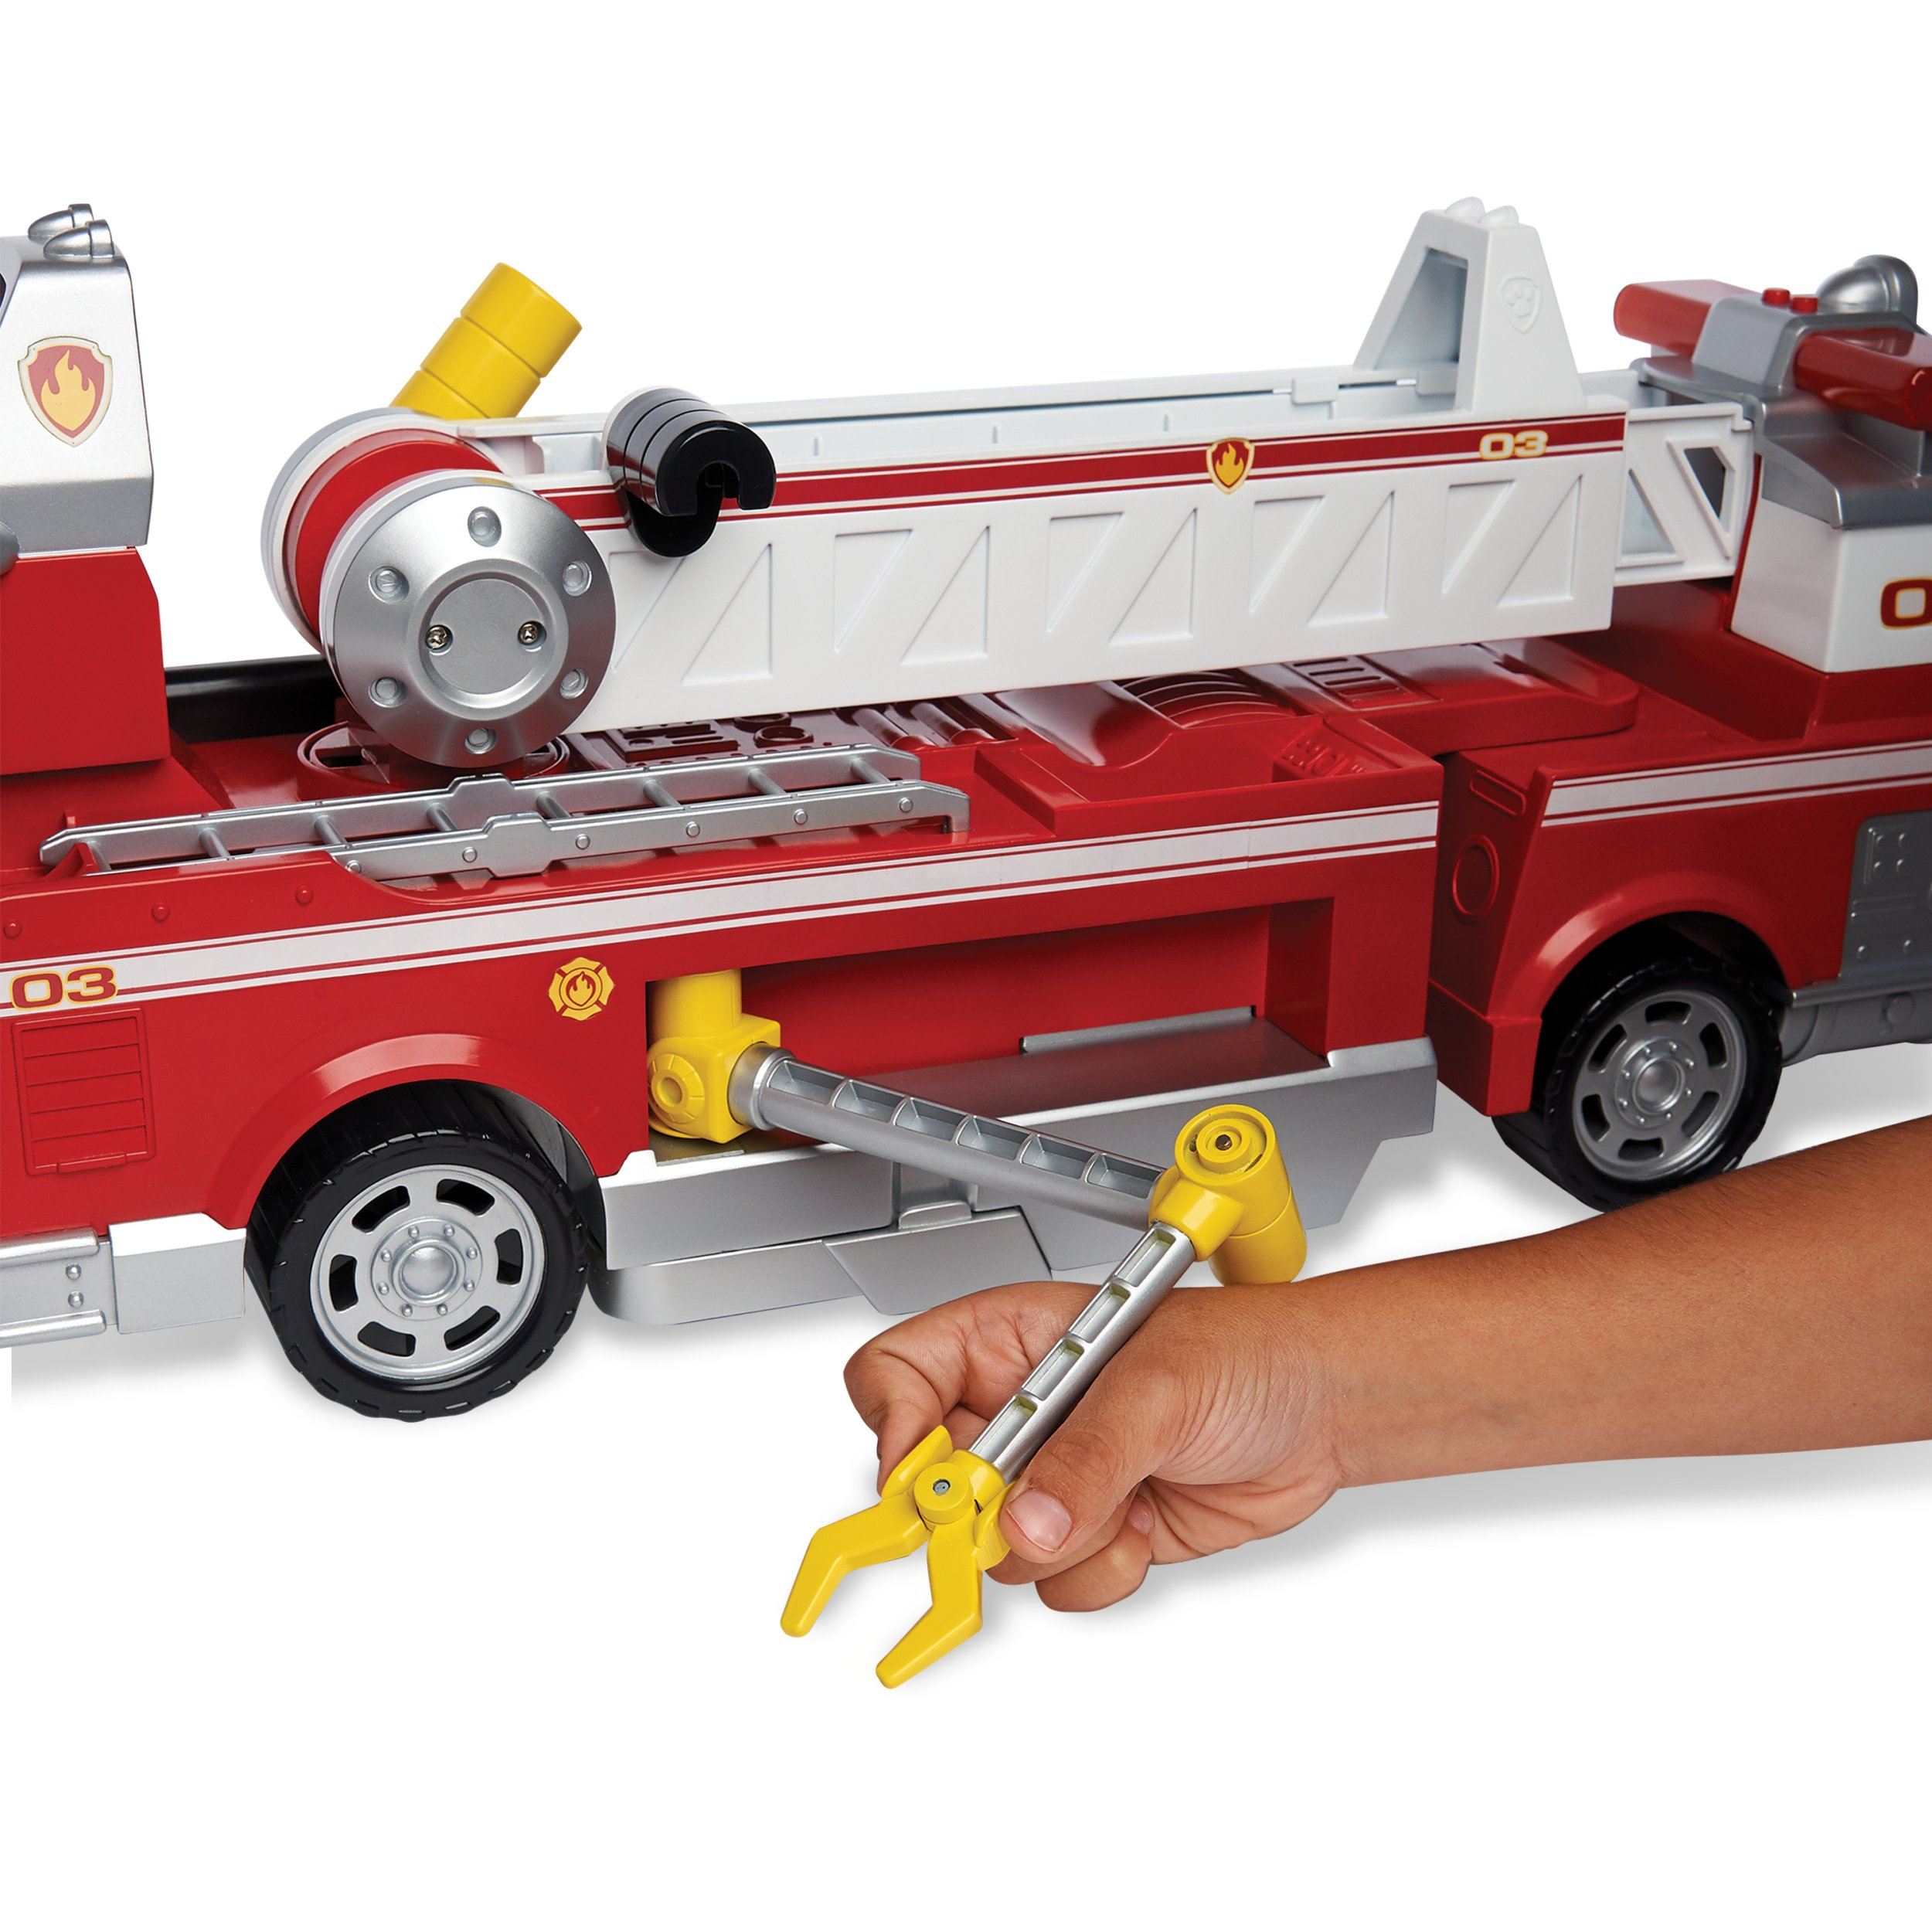 PAW Patrol - Ultimate Rescue Fire Truck with Extendable 2 ft. Tall Ladder, for Ages 3 and Up by Paw Patrol (Image #9)